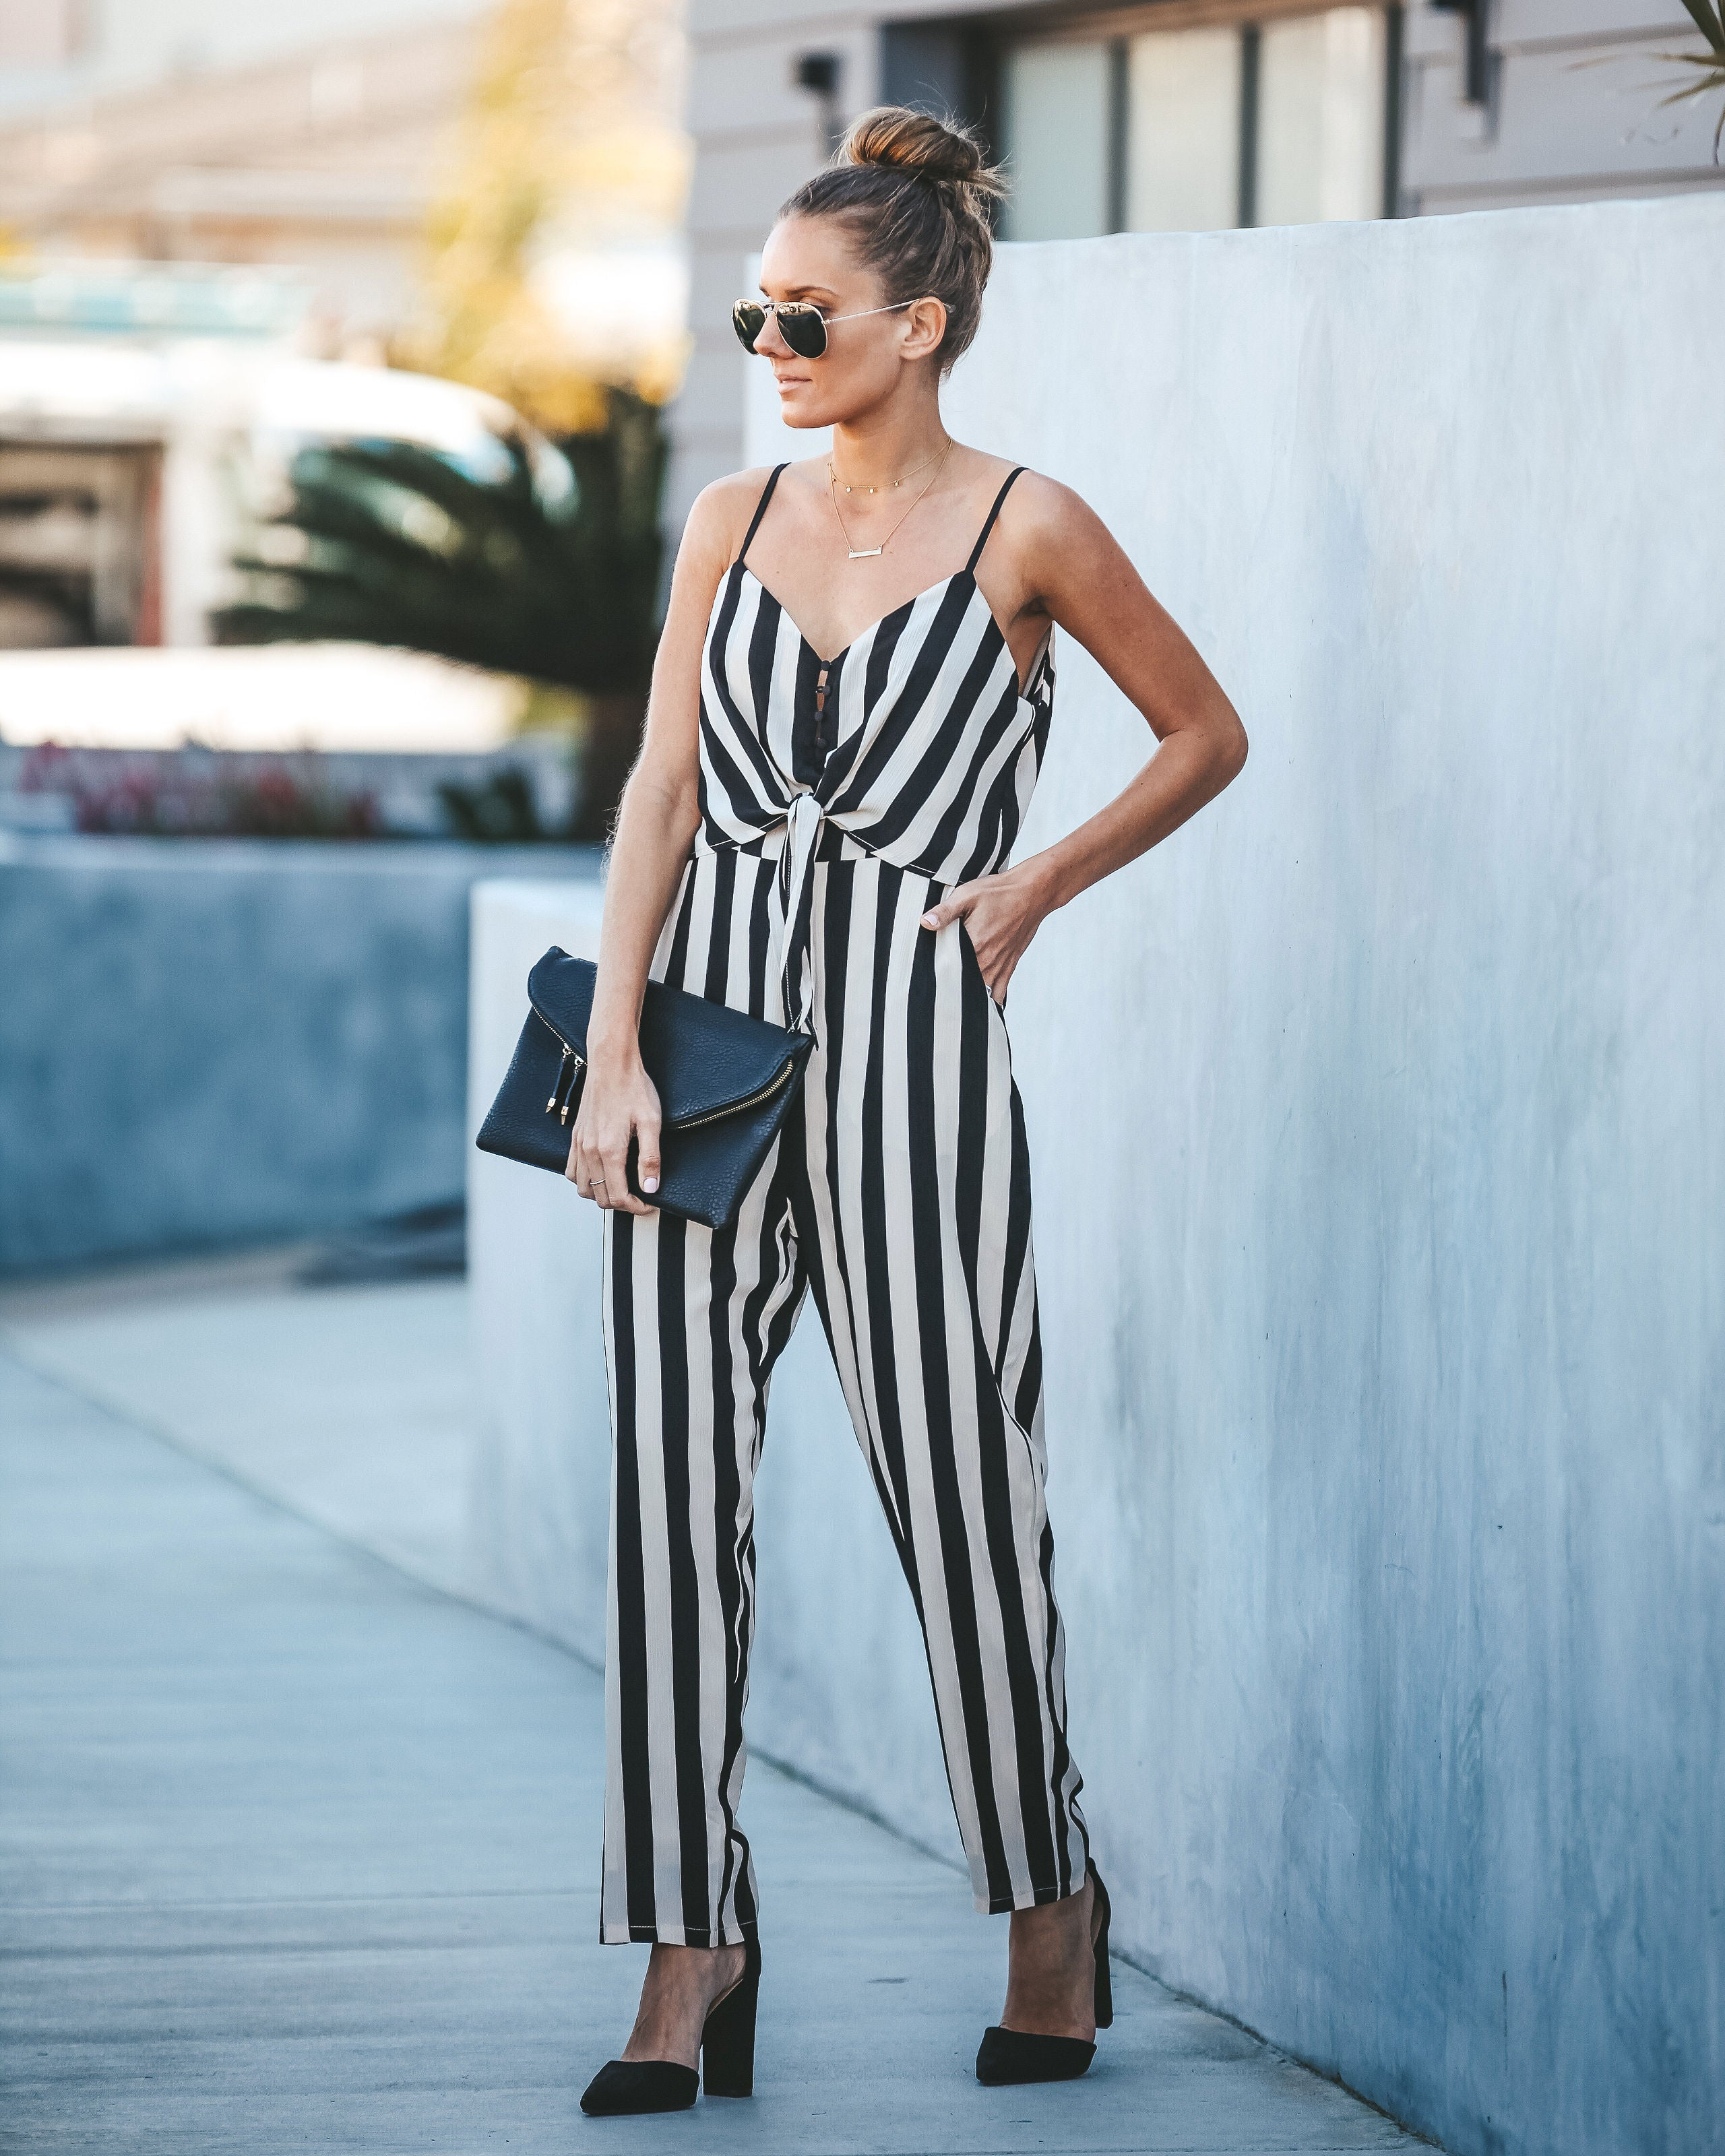 45f978f8ad8f Kelly Striped Pocketed Jumpsuit - FINAL SALE – VICI